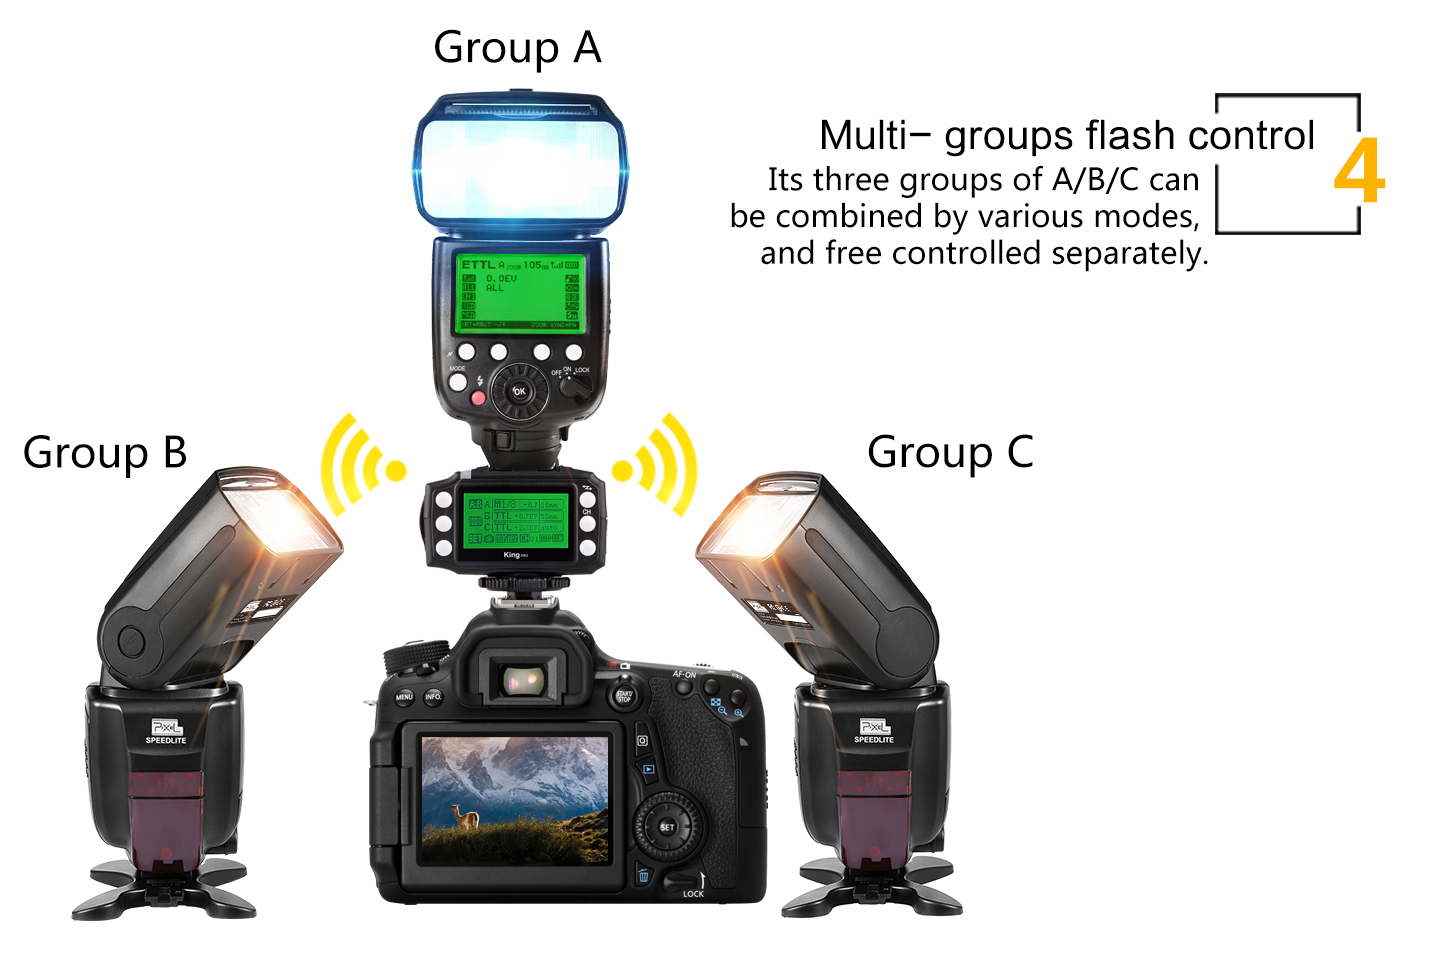 Multi- groups flash control